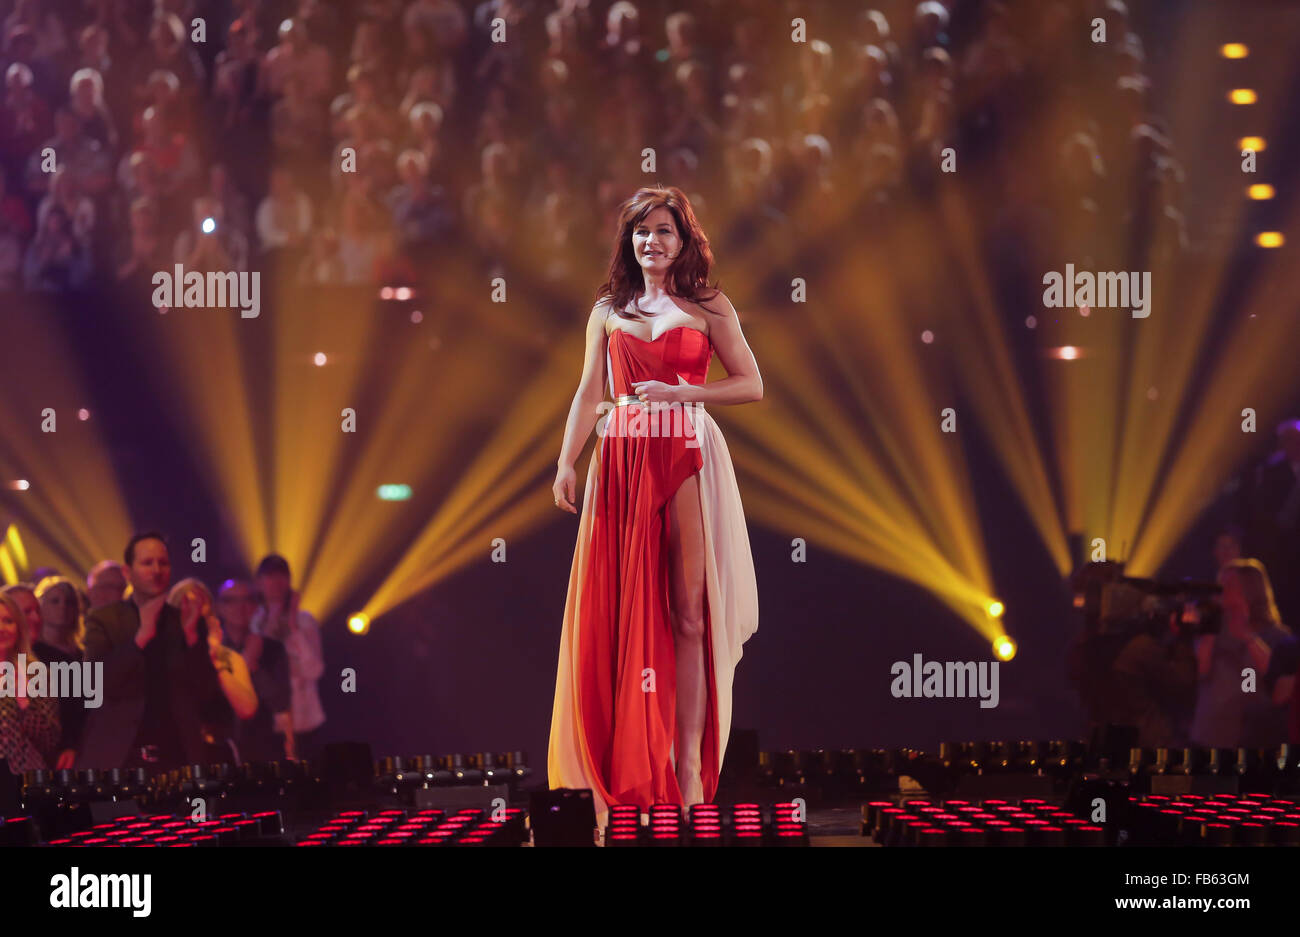 Andrea berg 2016 hd image free - 9th January 2016 Andrea Berg Presenting The Song At The Tv Show Das Grosse Fest Der Besten With Florian Silbereisen In The Velodrom In Berlin Credit